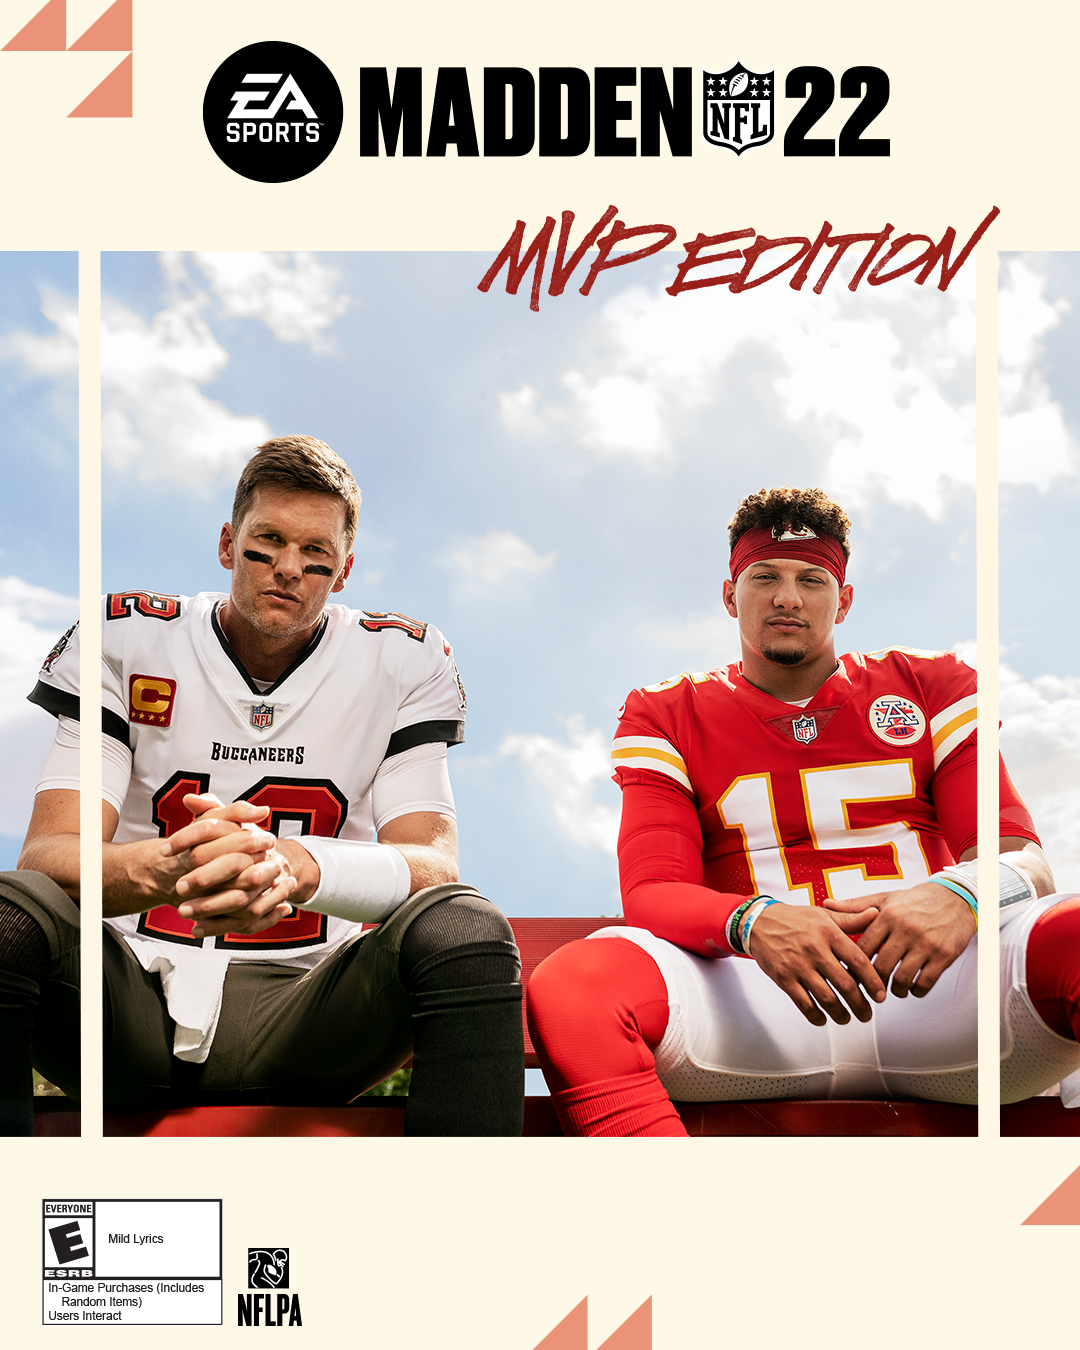 madden 22 cover reveal gameplay trailer pre order and release date details